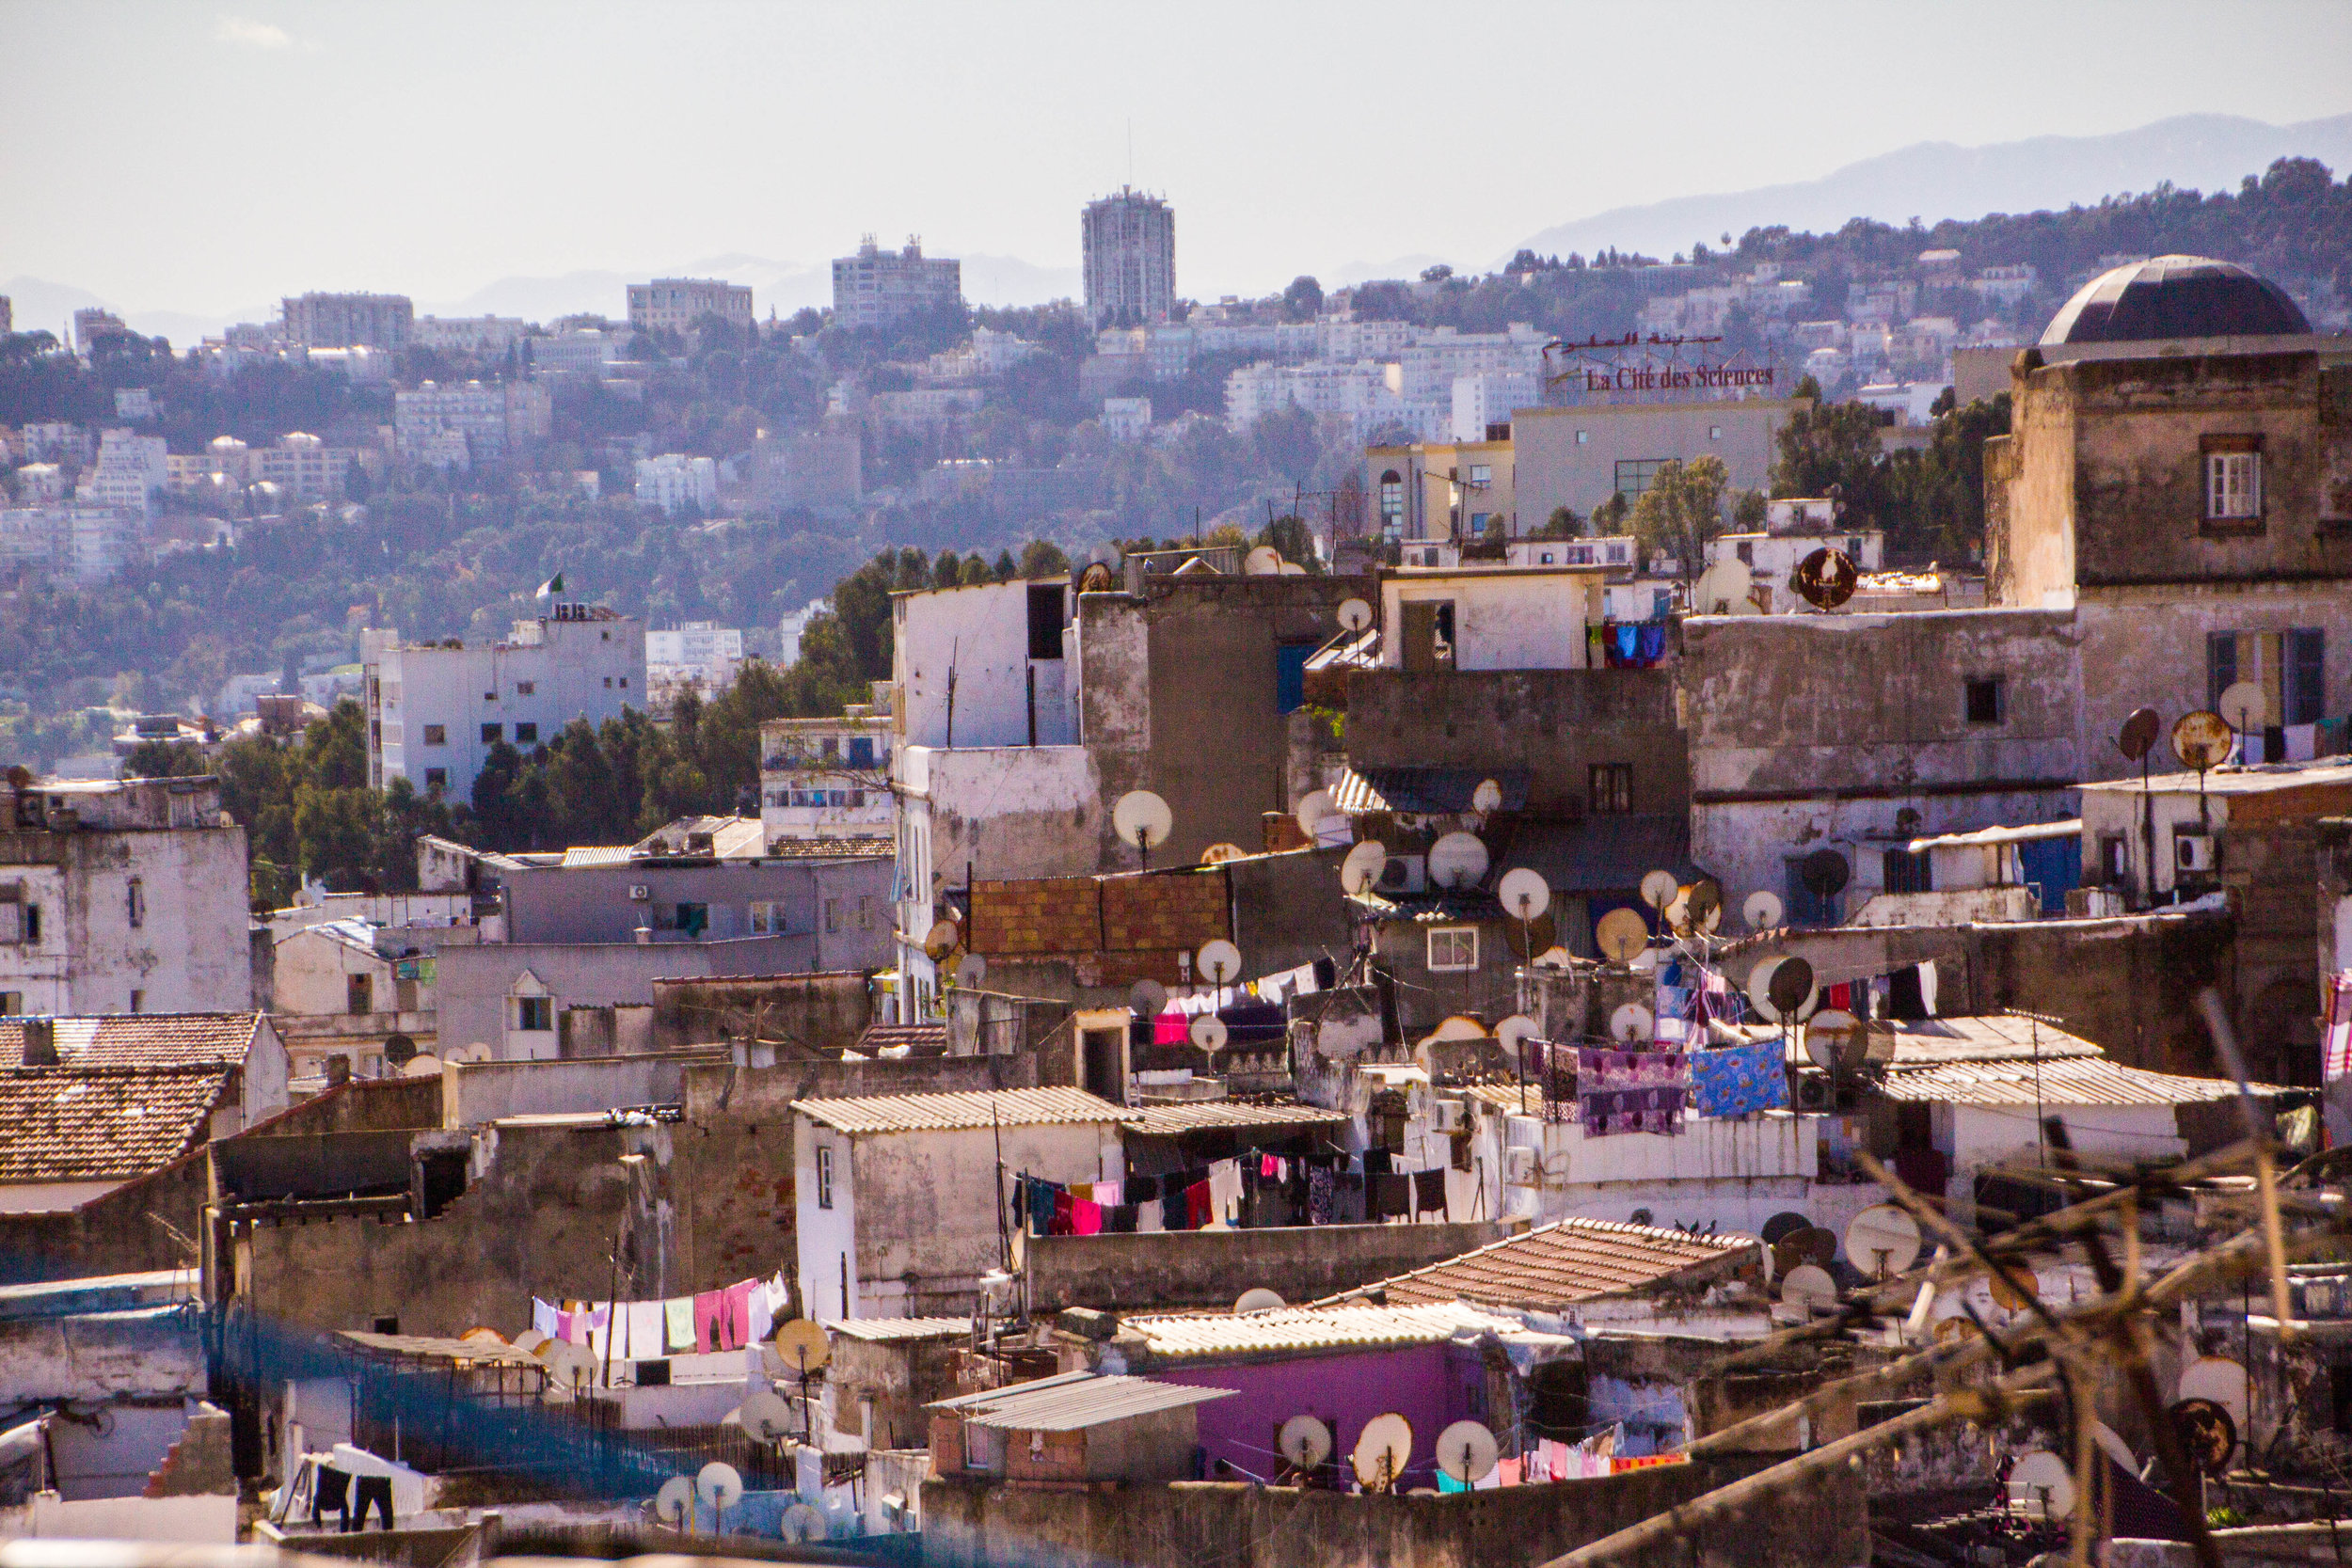 casbah-from-above-algiers-algeria-32.jpg